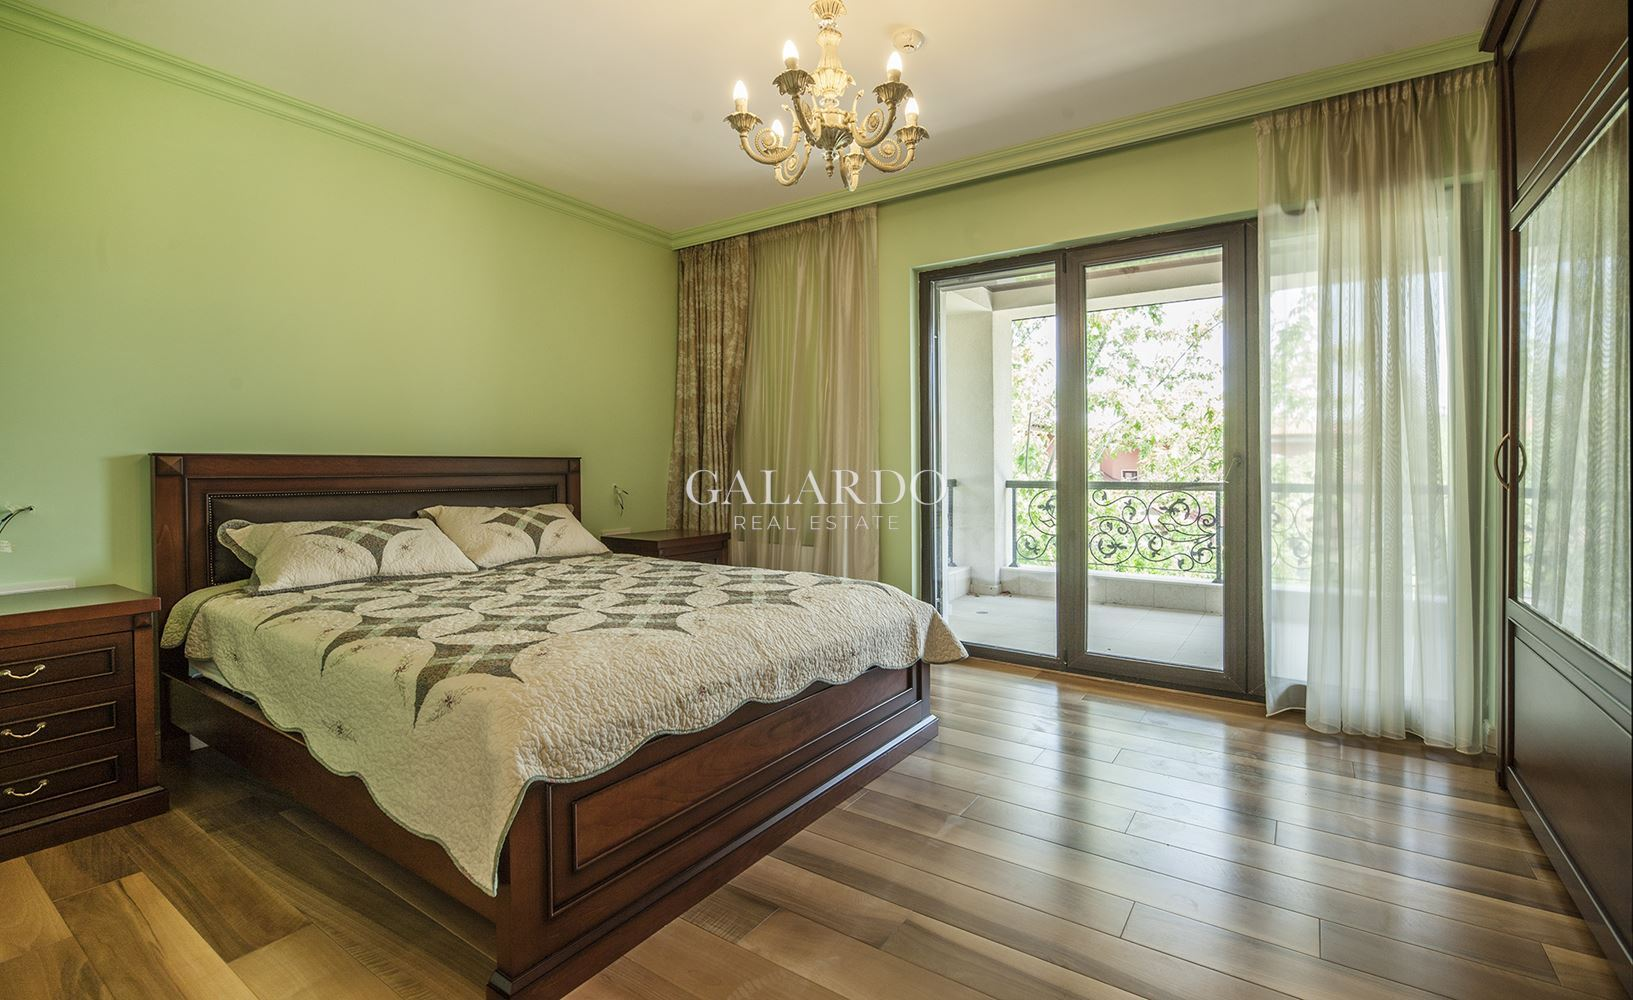 House for sale in a gated complex